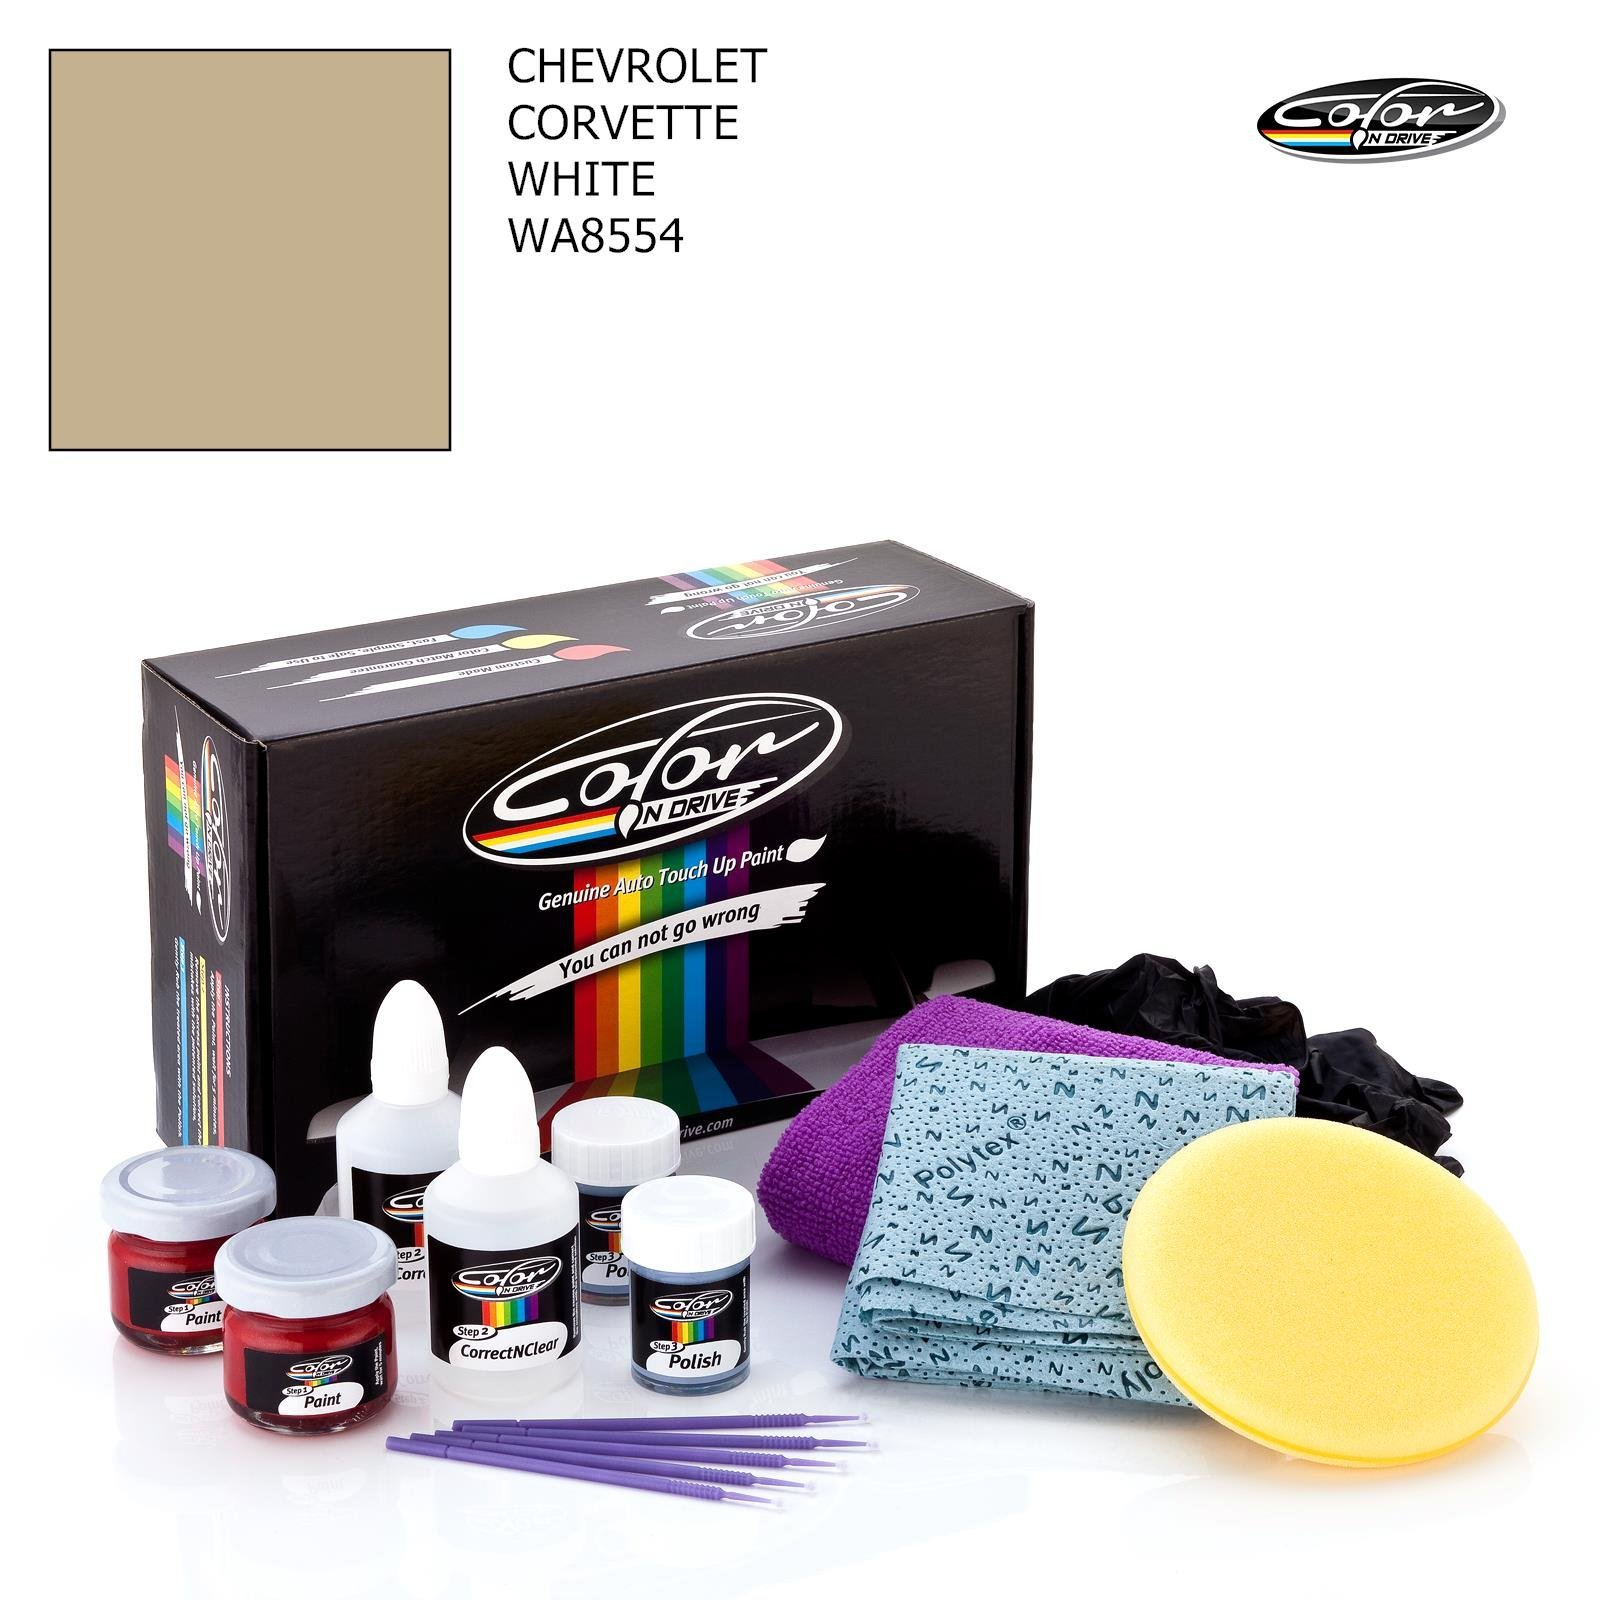 CHEVROLET CORVETTE / WHITE - WA8554 / COLOR N DRIVE TOUCH UP PAINT SYSTEM FOR PAINT CHIPS AND SCRATCHES / PRO PACK